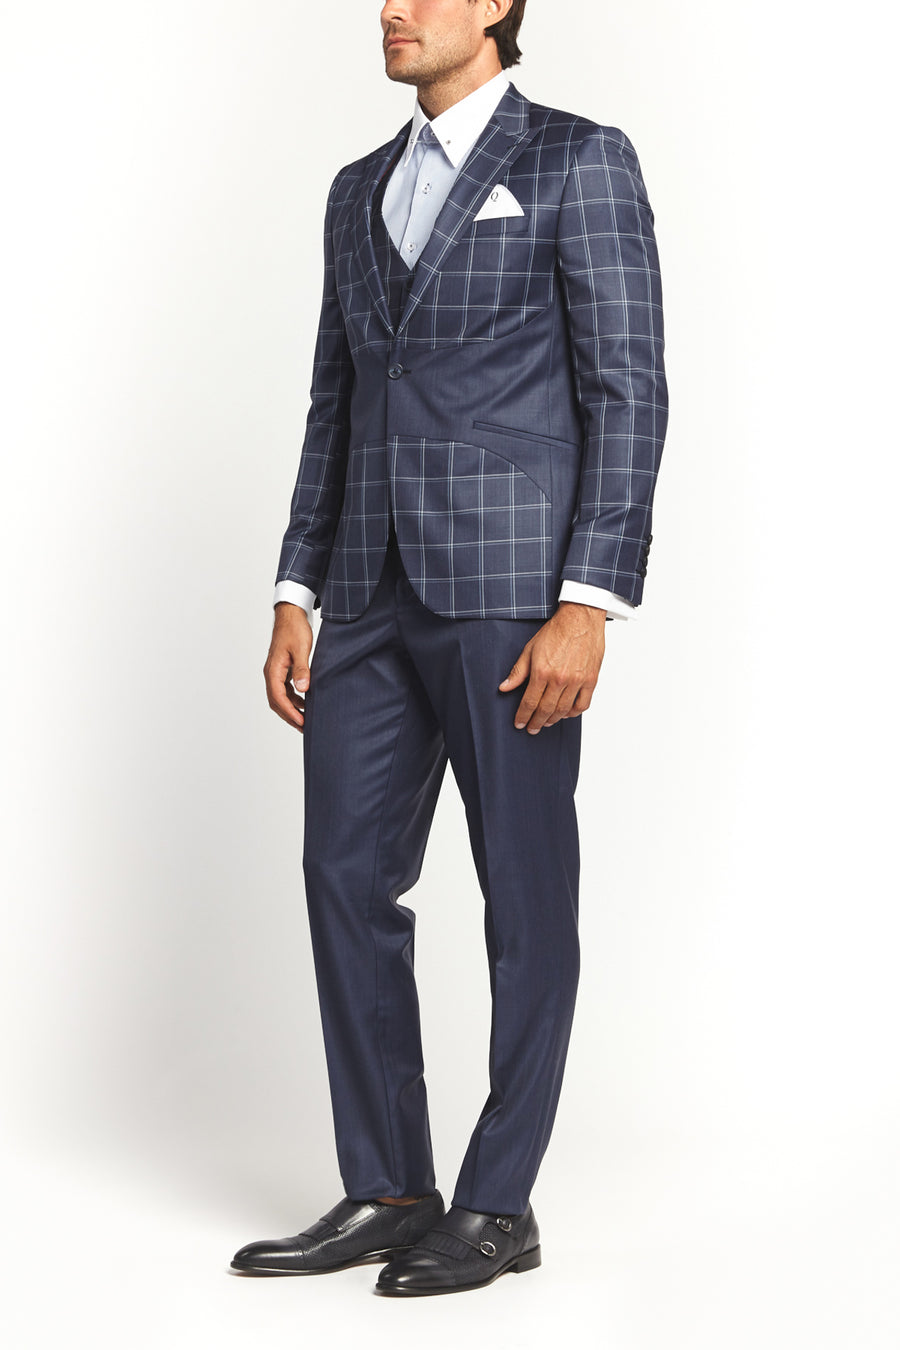 CLASSIC BLUE PATTERN 2-PIECE SUIT